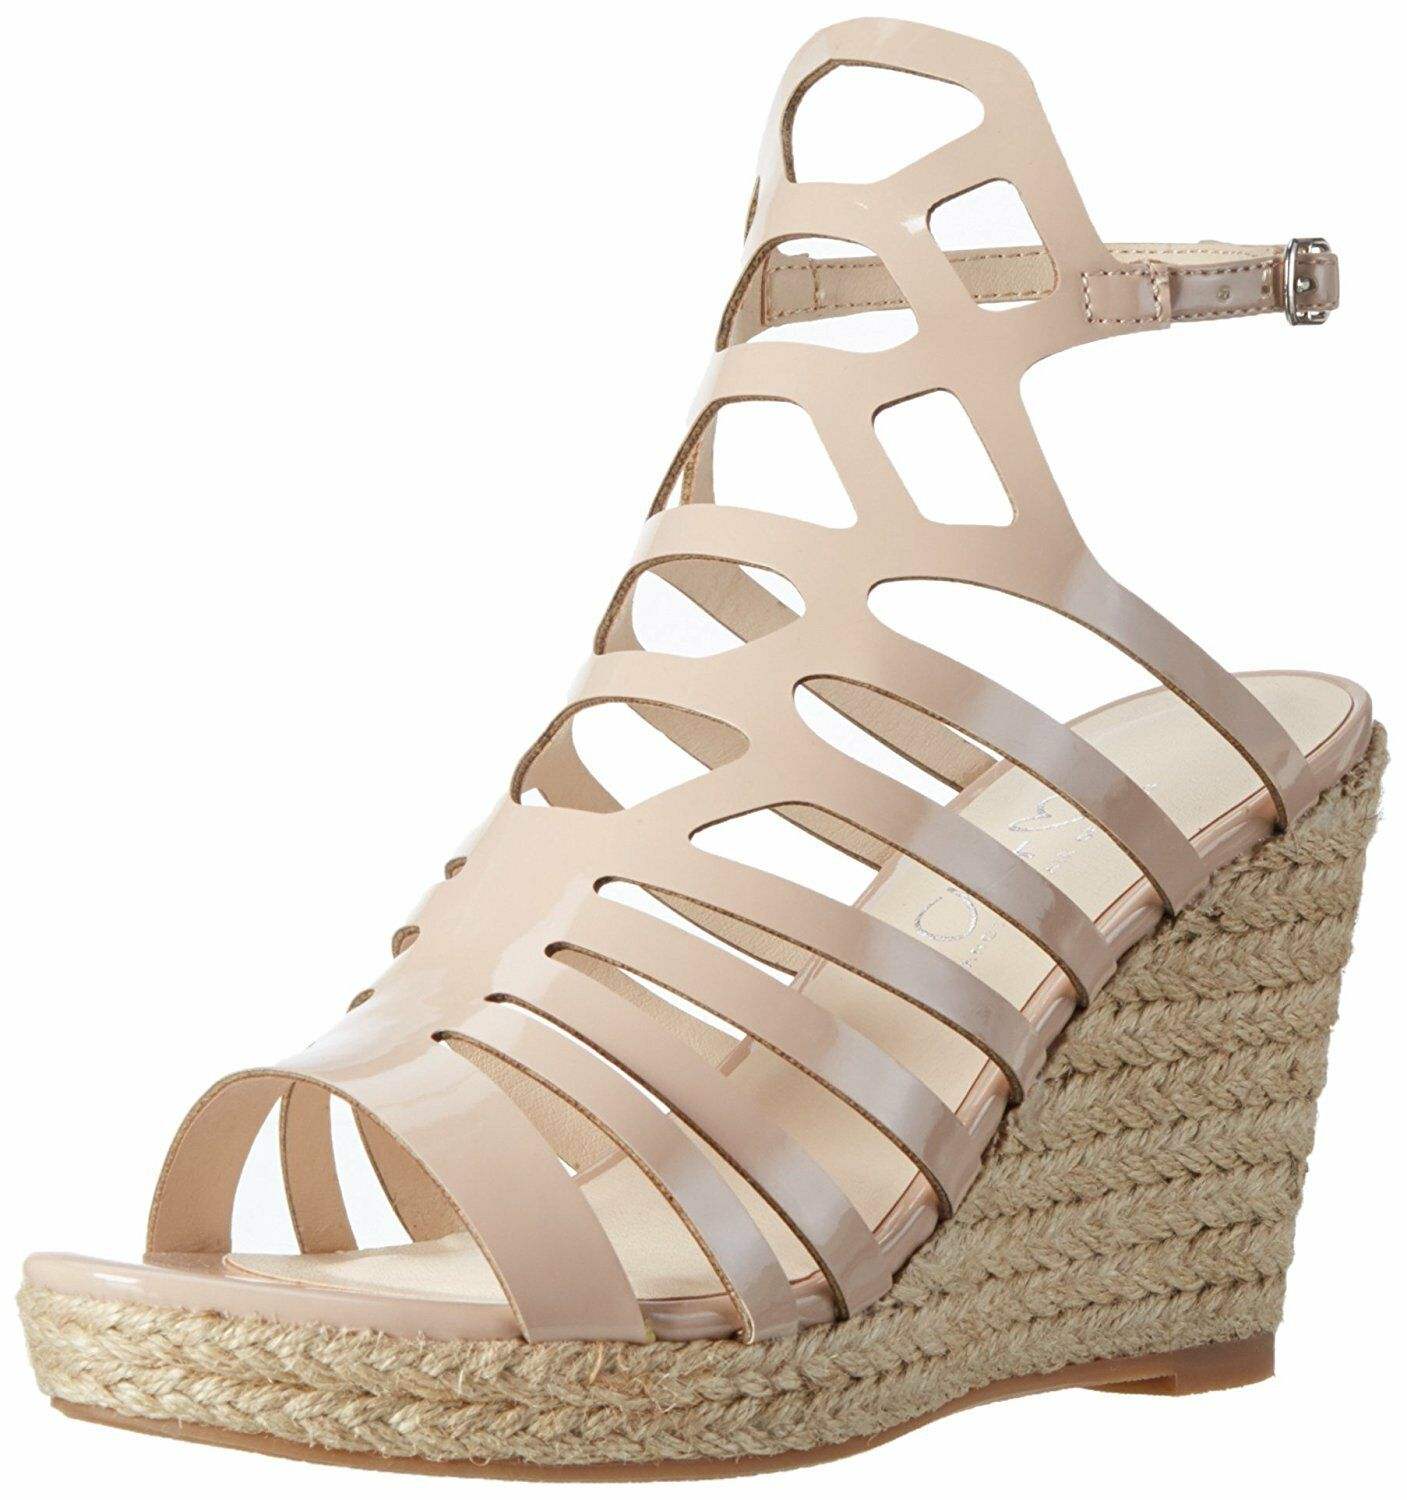 WOMENS SIZE 9 42 NUDE HIGH HEEL WEDGE CAGED TRANSVESTITE CD DRAG SANDALS SHOES